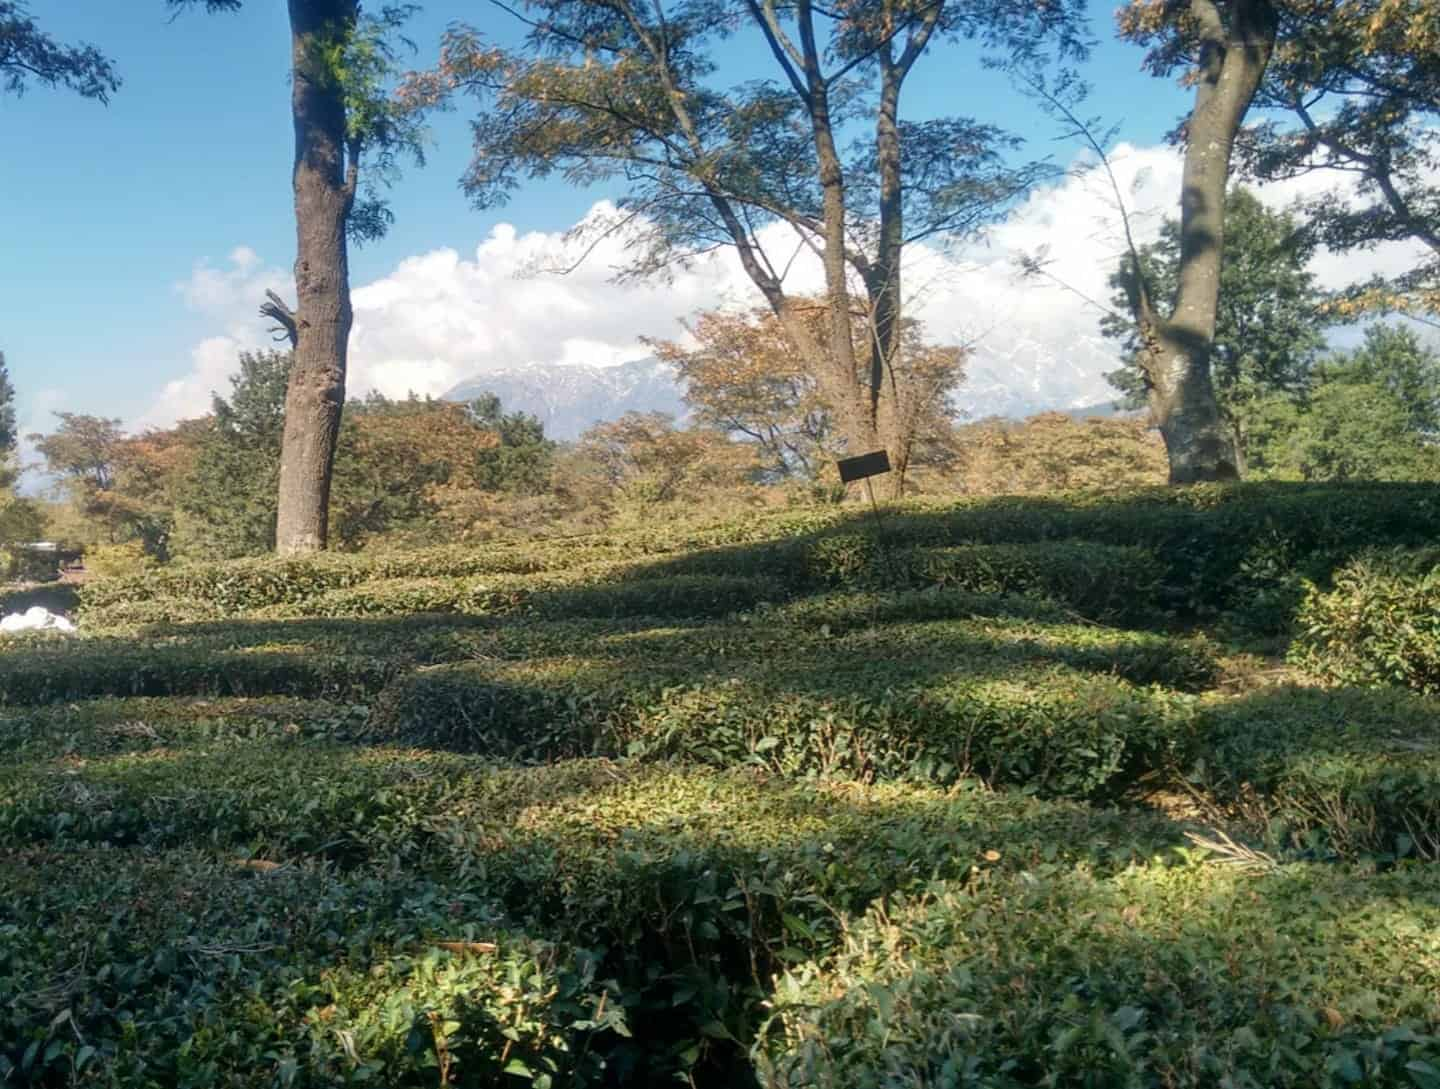 Tea Gardens of Palampur